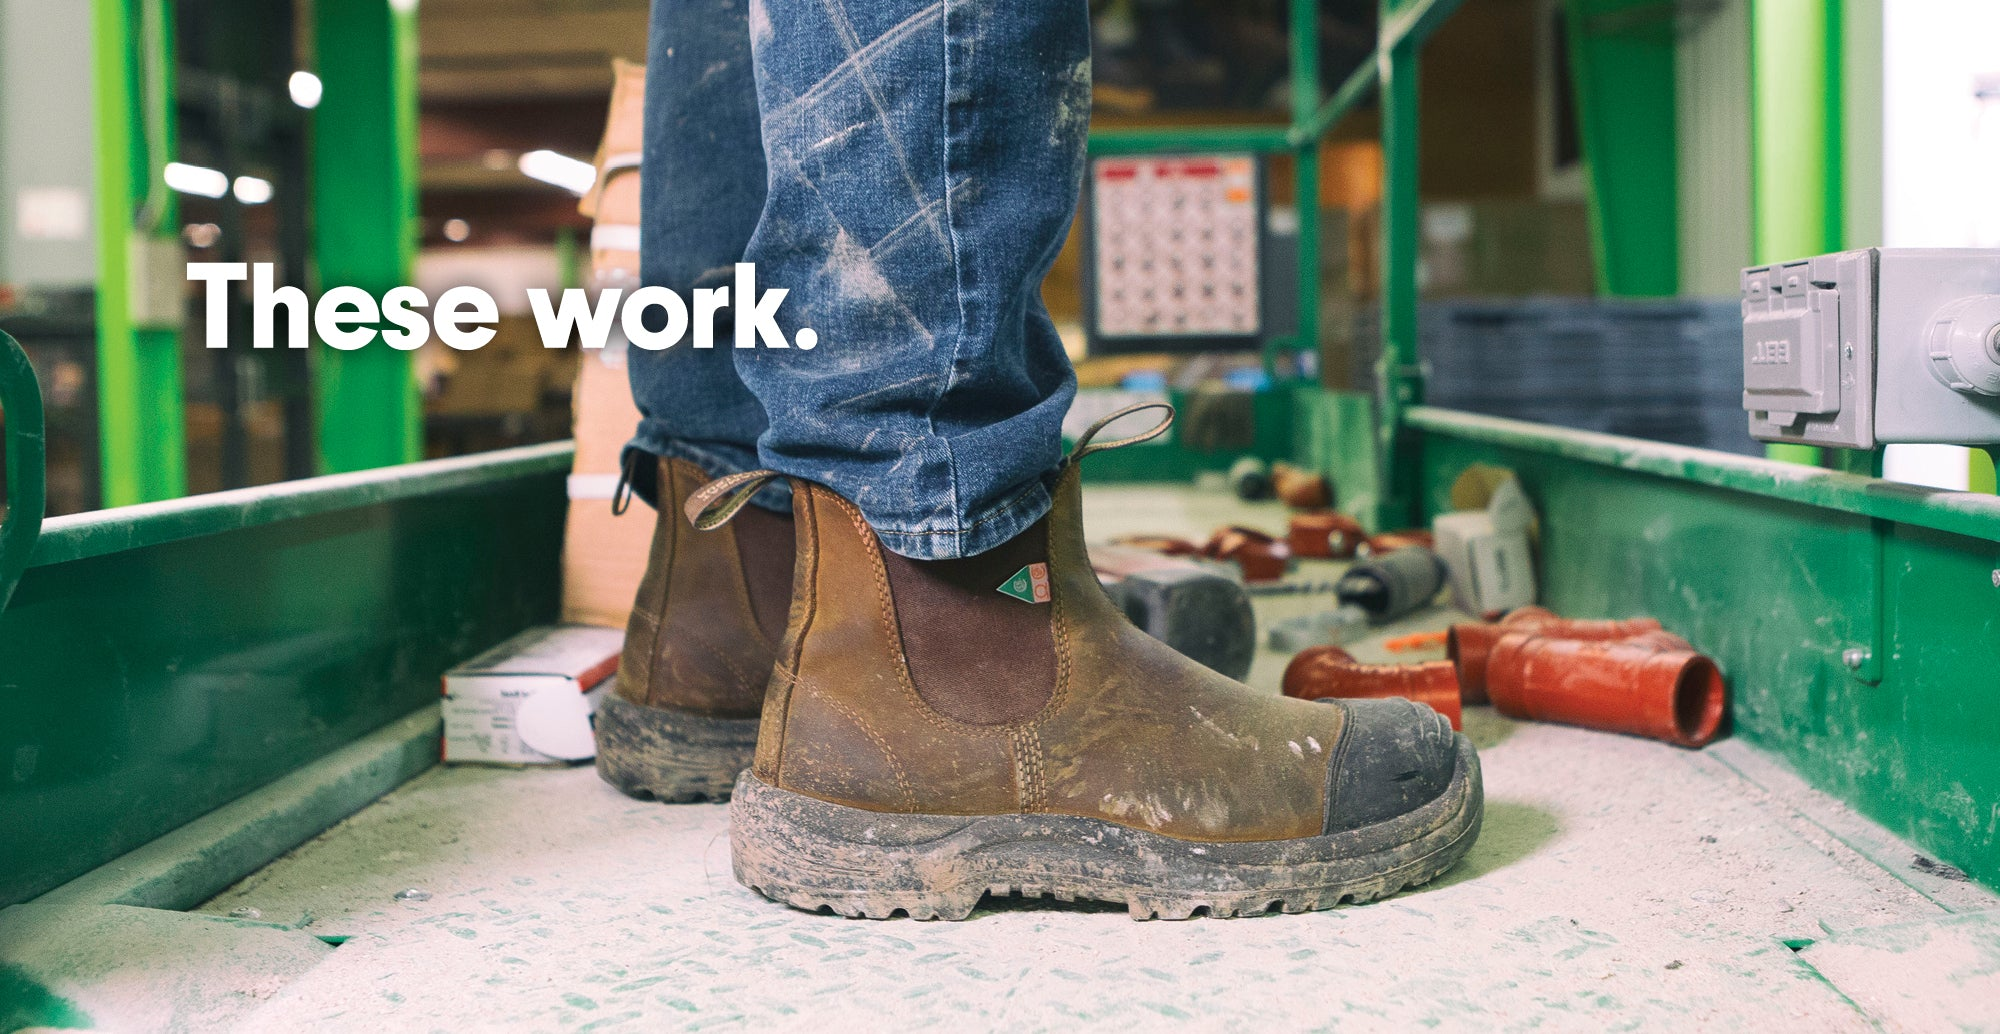 CSA work and safety boots